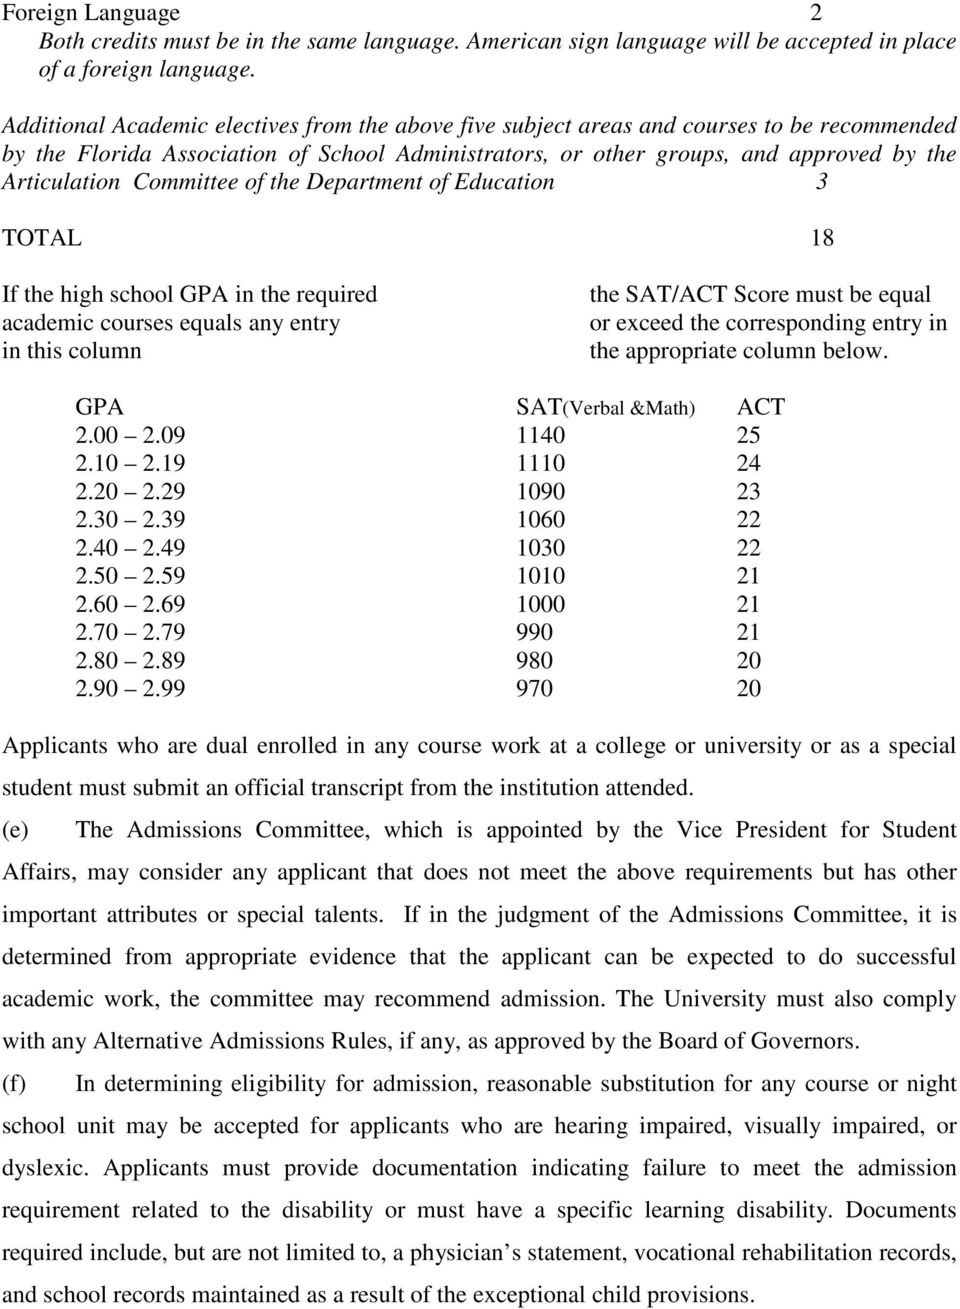 Committee of the Department of Education 3 TOTAL 18 If the high school GPA in the required academic courses equals any entry in this column the SAT/ACT Score must be equal or exceed the corresponding